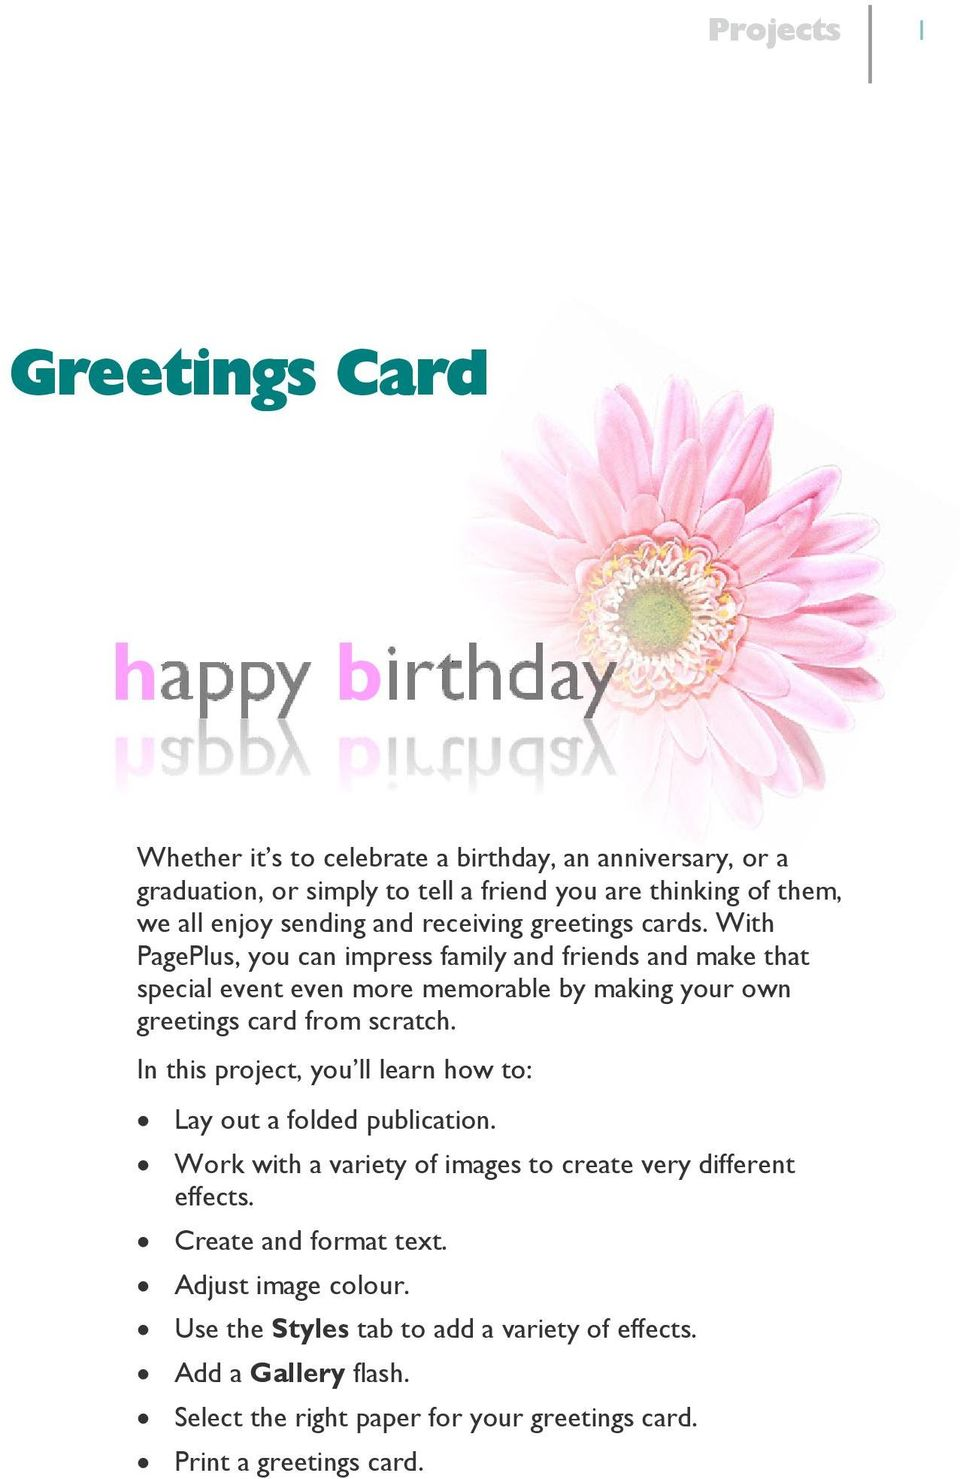 With PagePlus, you can impress family and friends and make that special event even more memorable by making your own greetings card from scratch.